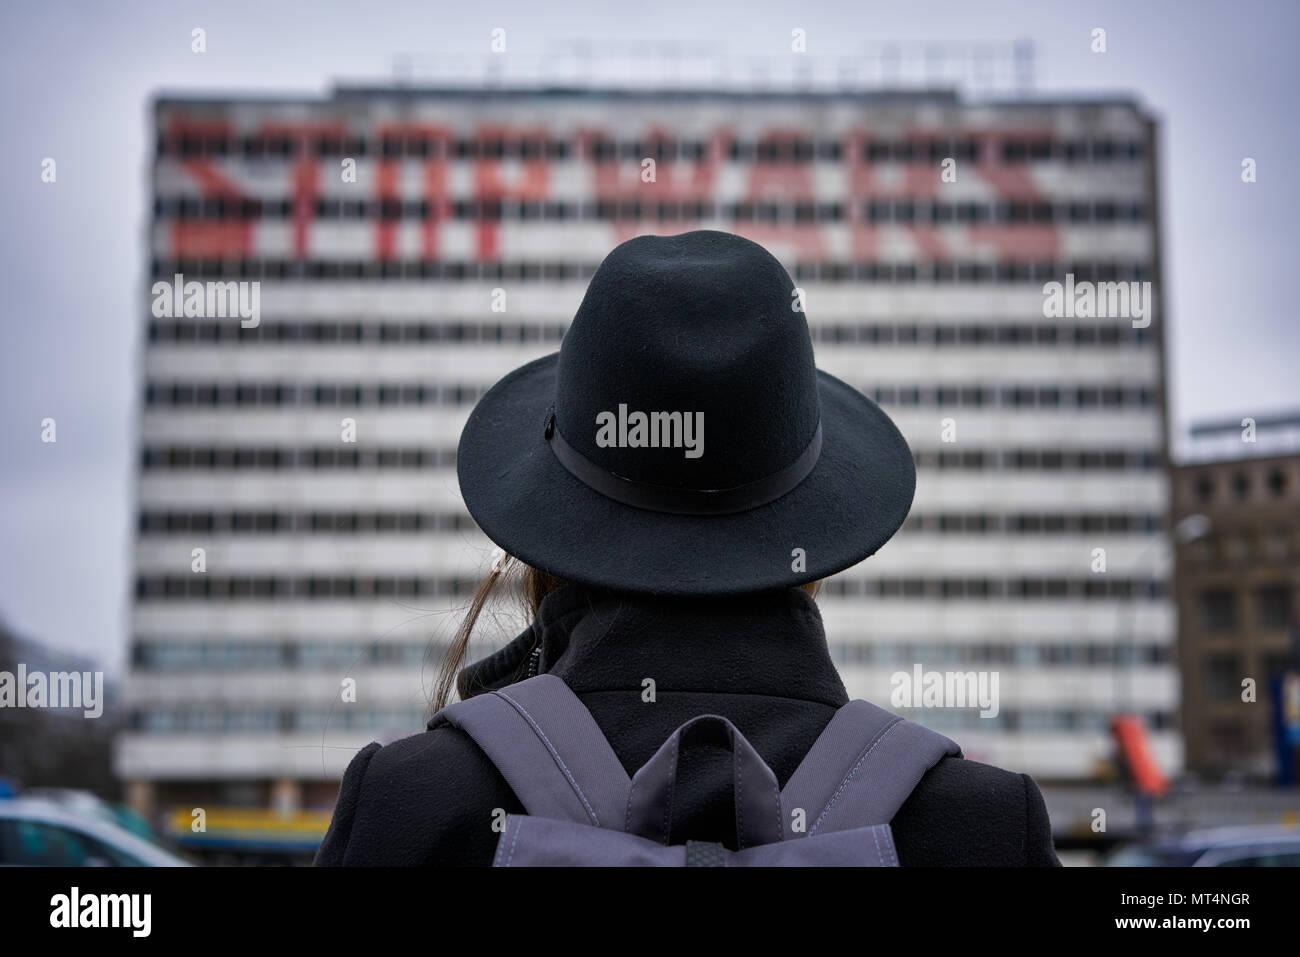 Berlin, Germany - April 4, 2017: Girl/Woman looking at 'Stop Wars' Graffiti on a building in Berlin Alexanderplatz - Stock Image